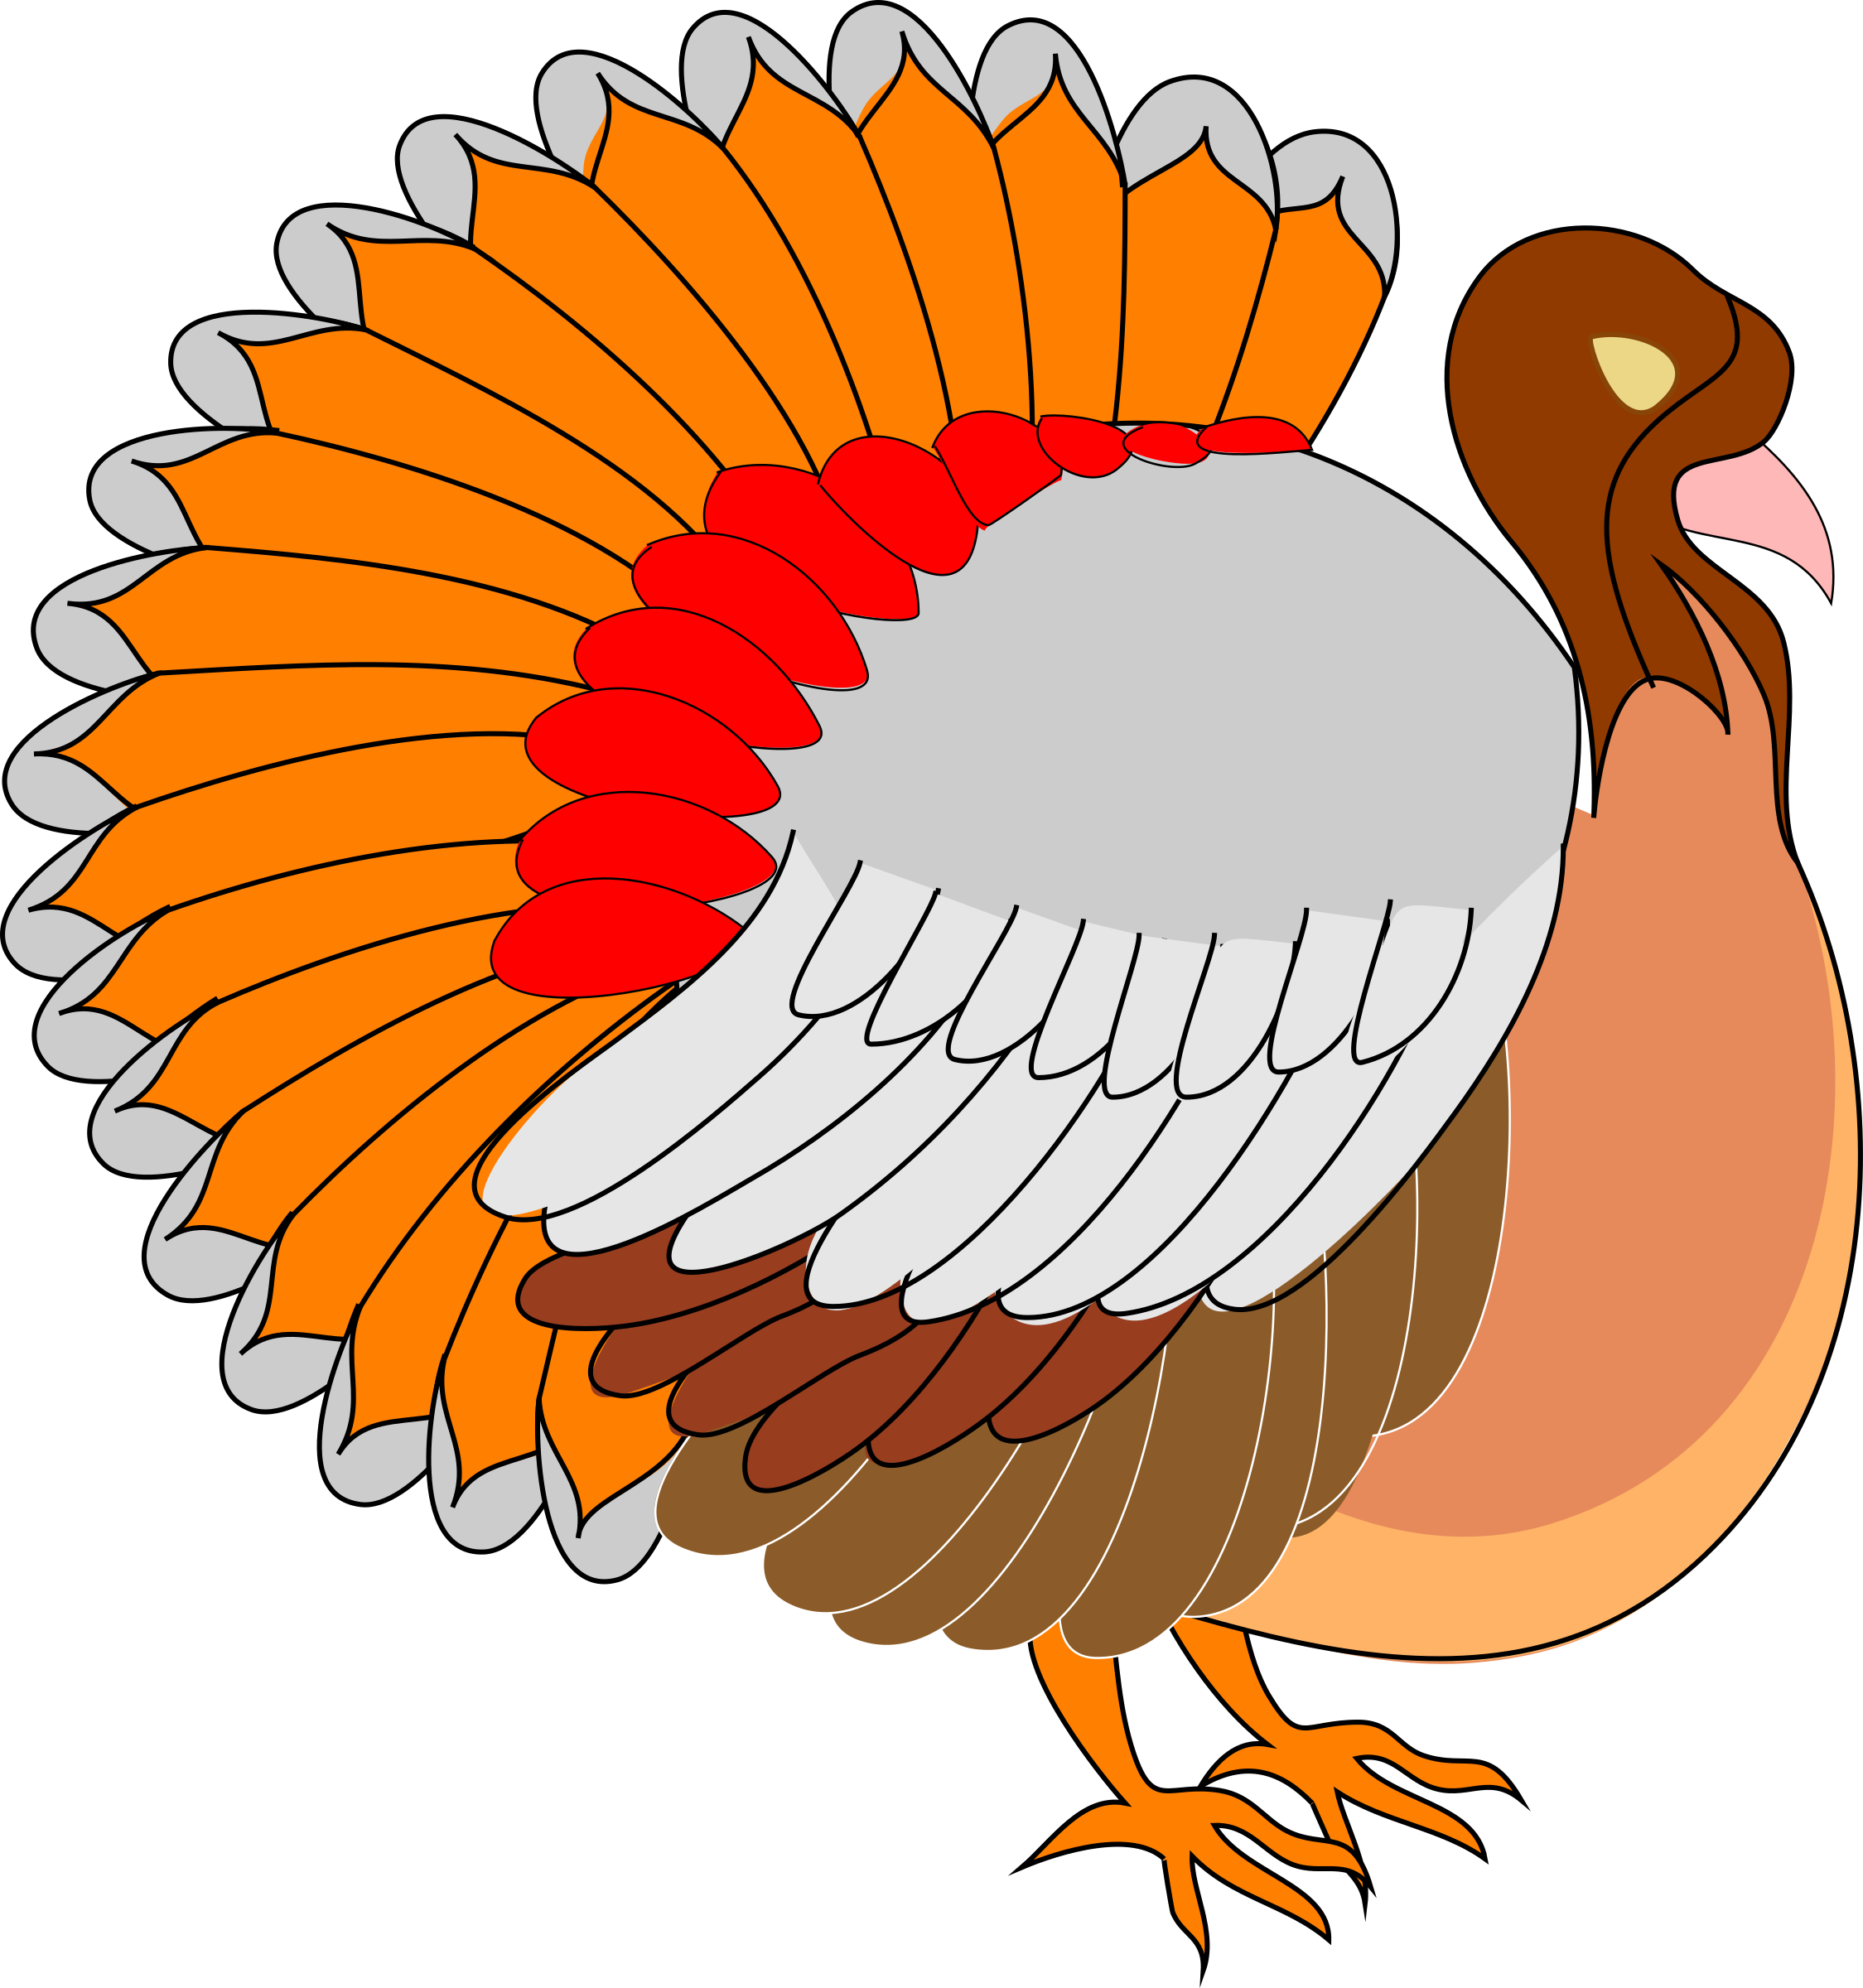 Stuffed turkey clipart graphic freeuse stock ➡➡ Turkey Black And White Clip Art Images Download graphic freeuse stock